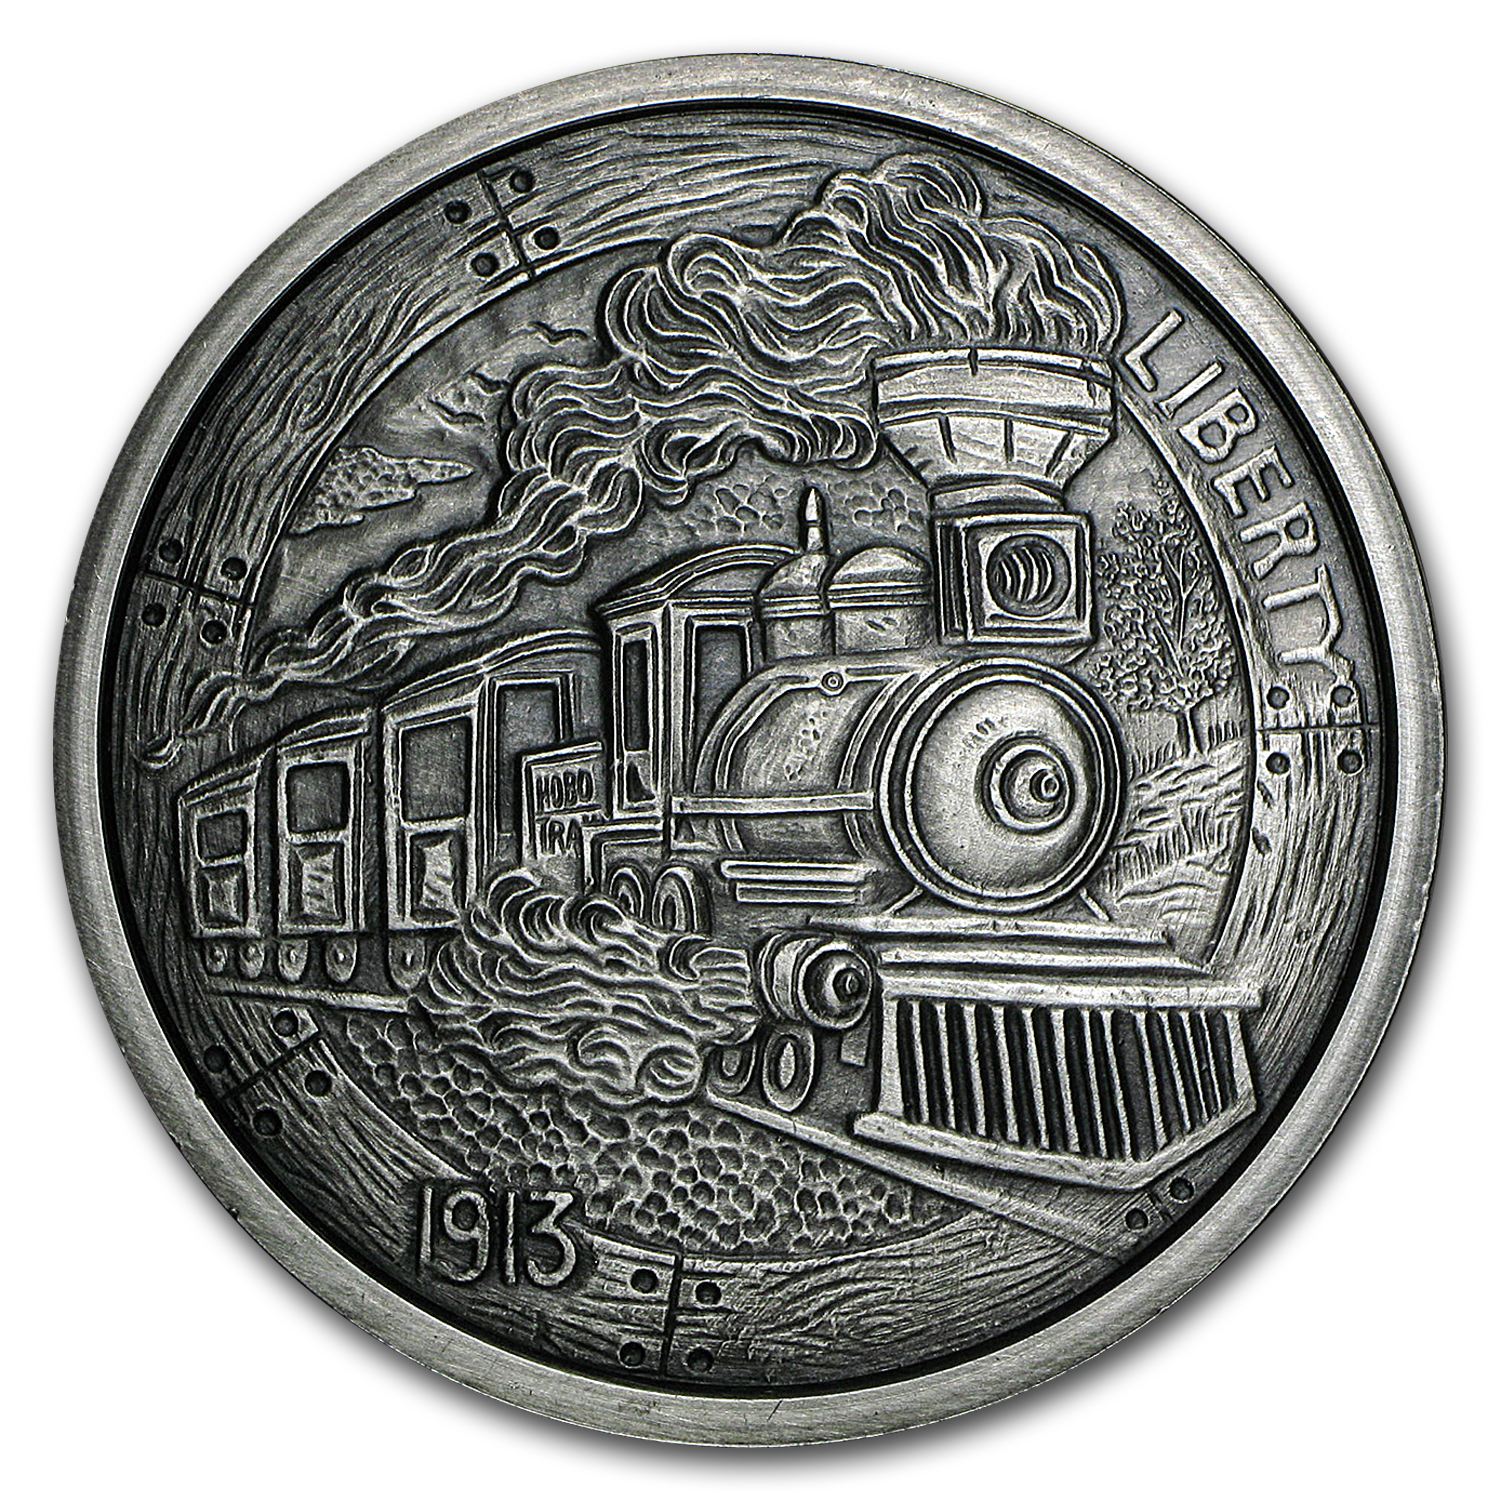 5 oz Silver Antique Round - Hobo Nickel Replica (The Train)